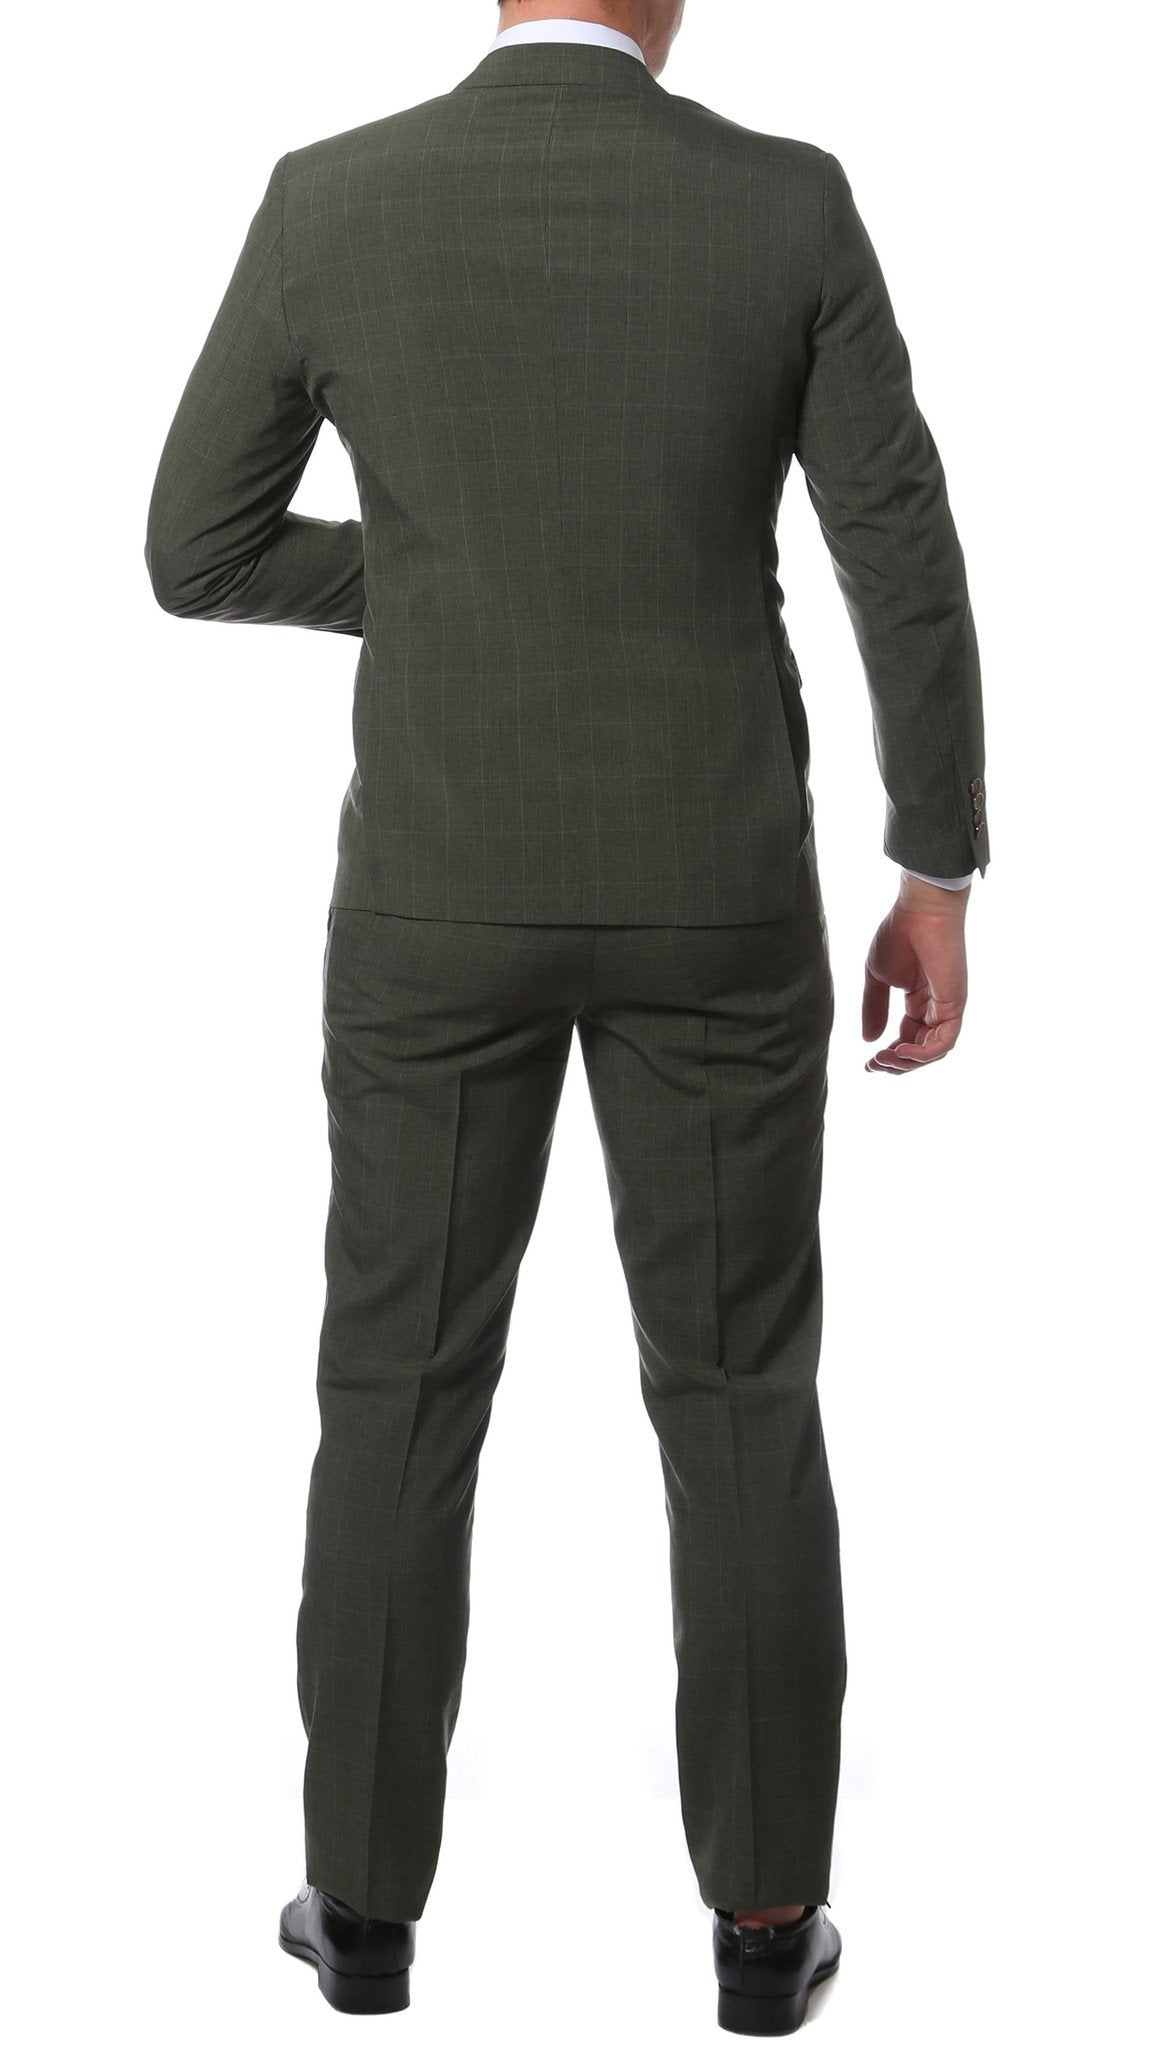 Etro Green Glen Plaid Slim Fit 2pc Suit - Giorgio's Menswear